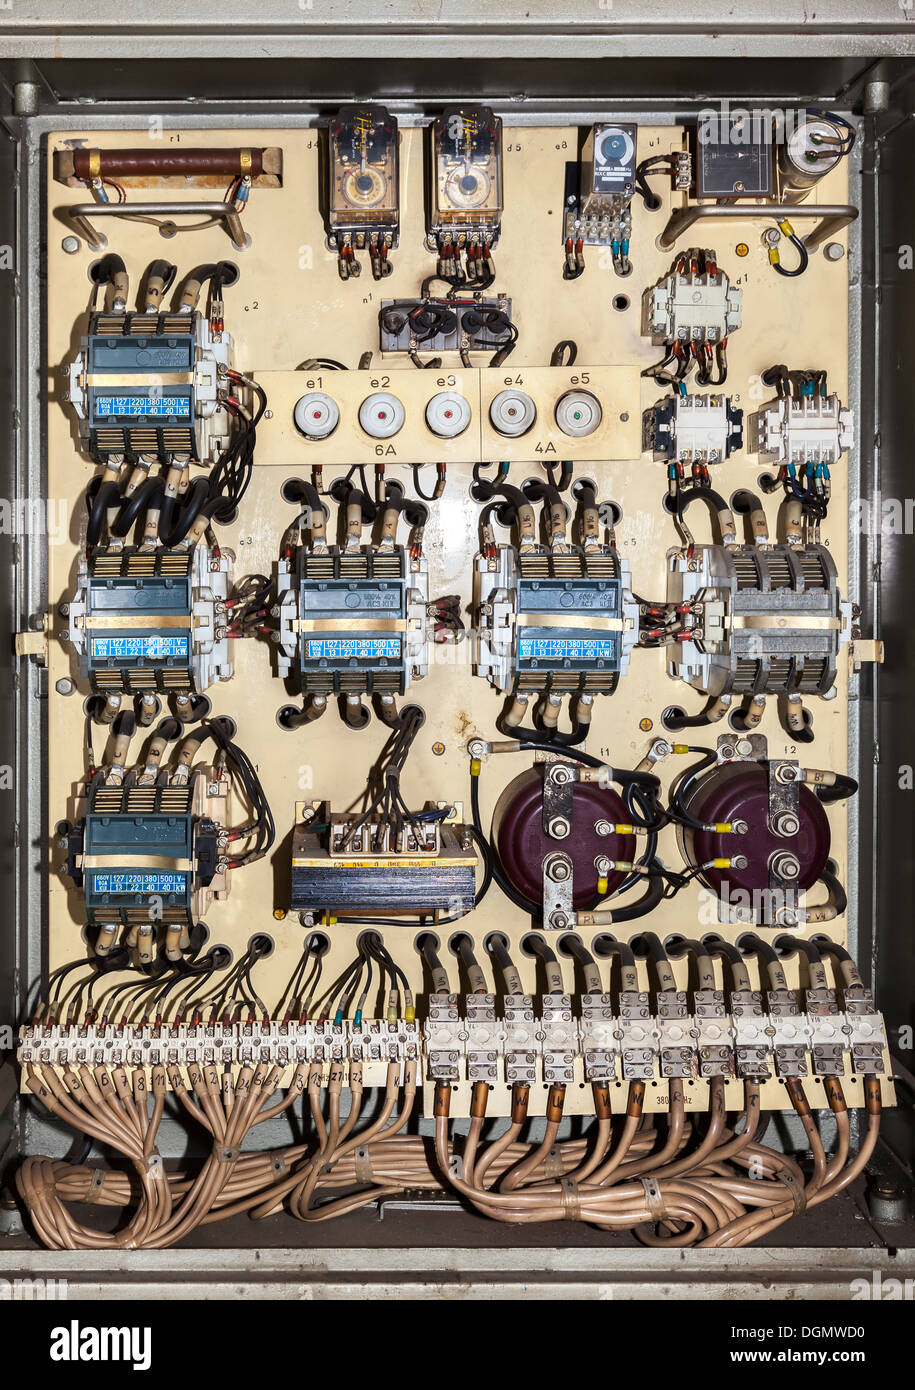 hight resolution of 3 phase fuse box